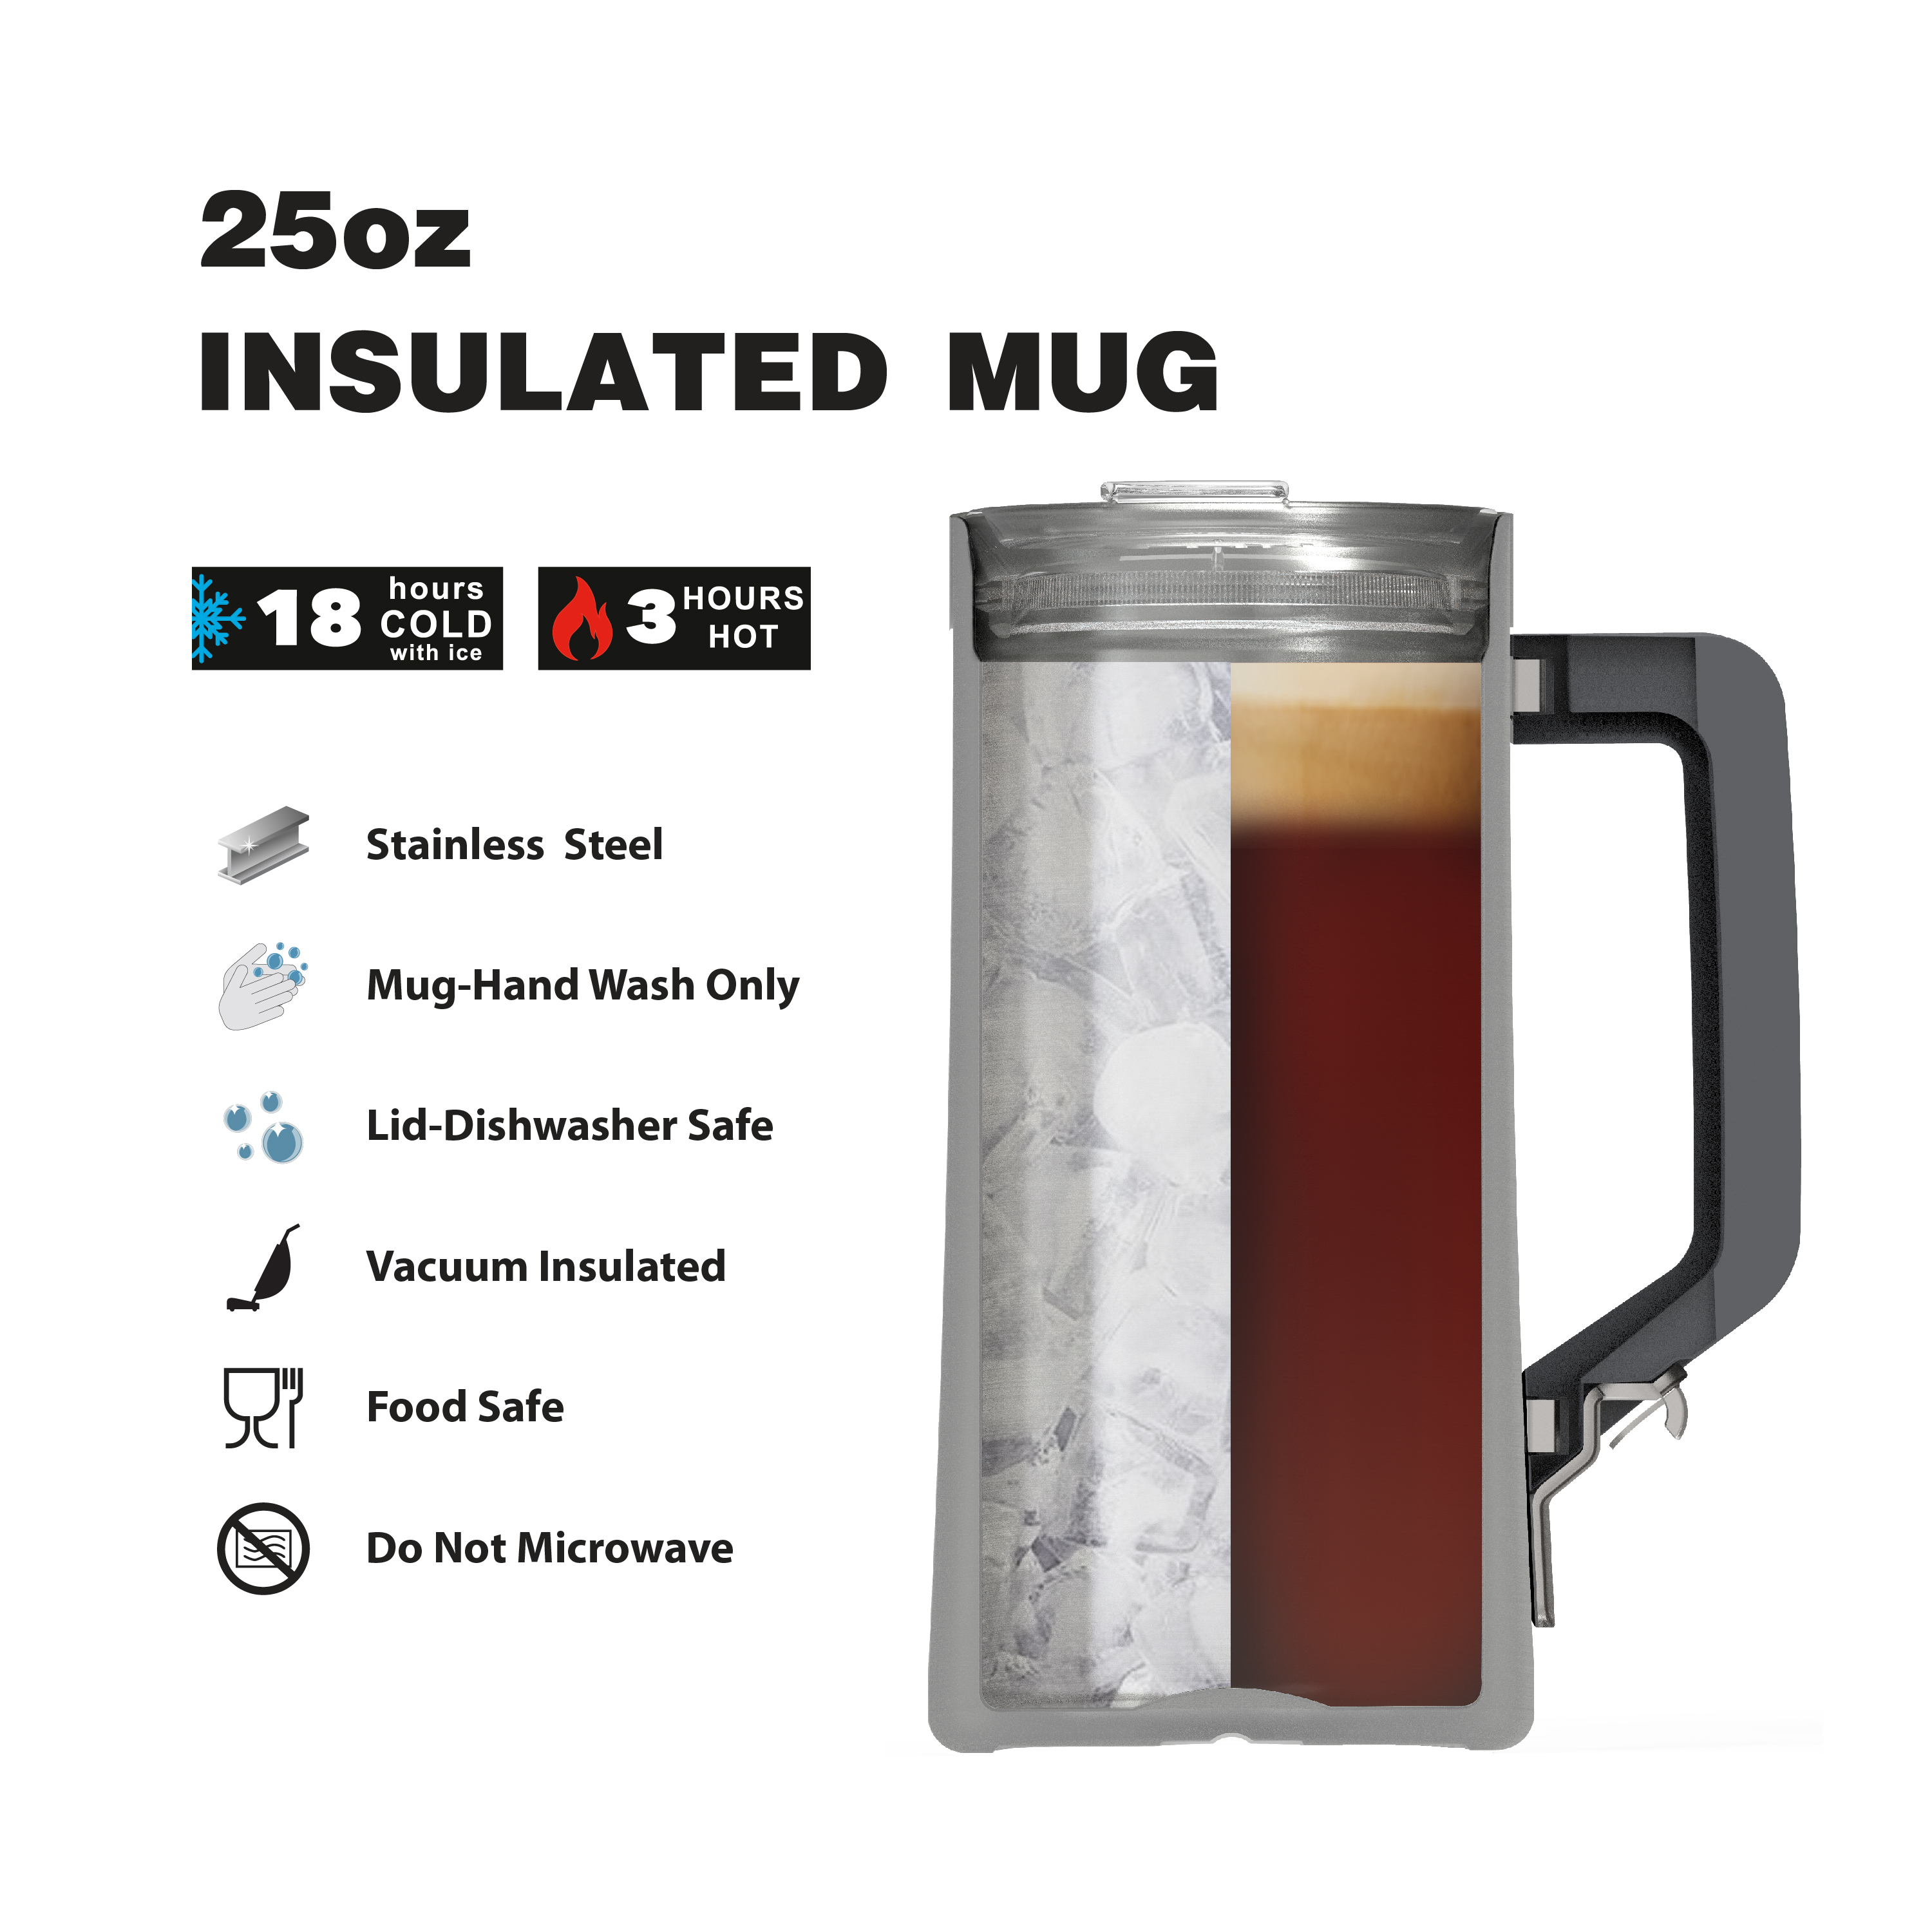 Creston 25 ounce Stainless Steel Vacuum Insulated Beer Stein, Rose Gold slideshow image 5